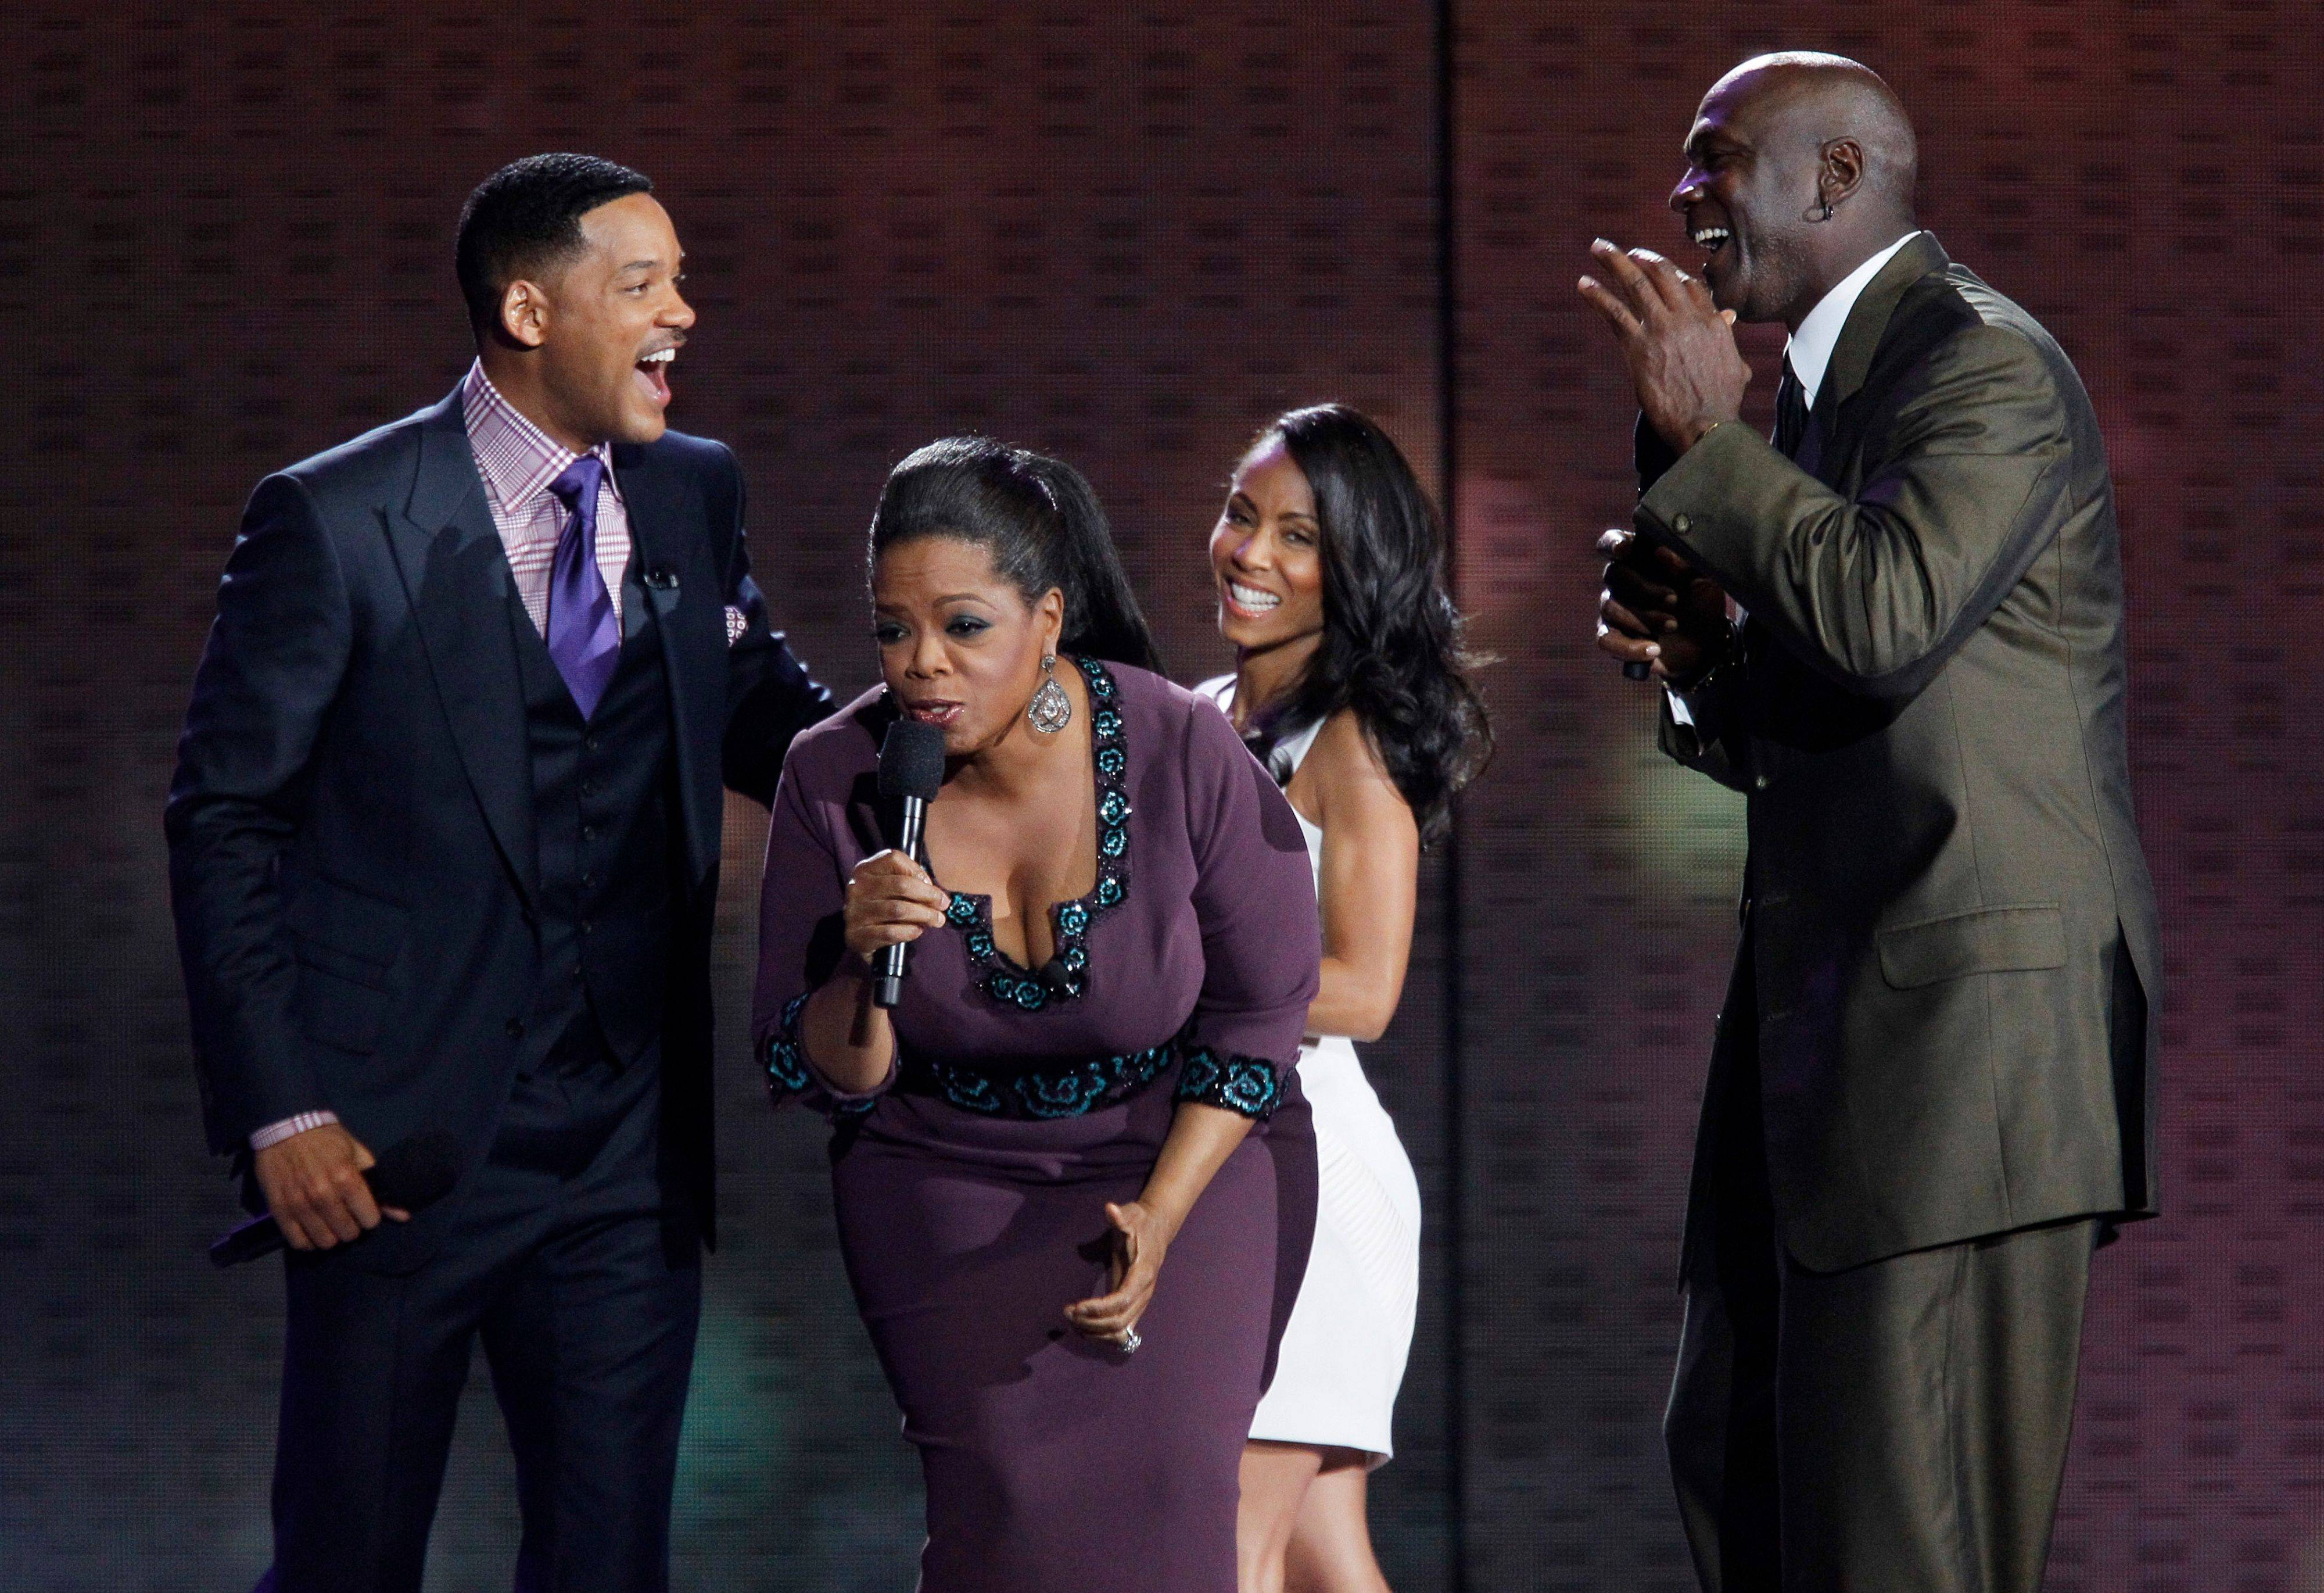 Oprah Winfrey reacts as she is surrounded by Will Smith, his wife Jada Pinkett Smith and Michael Jordan, right.